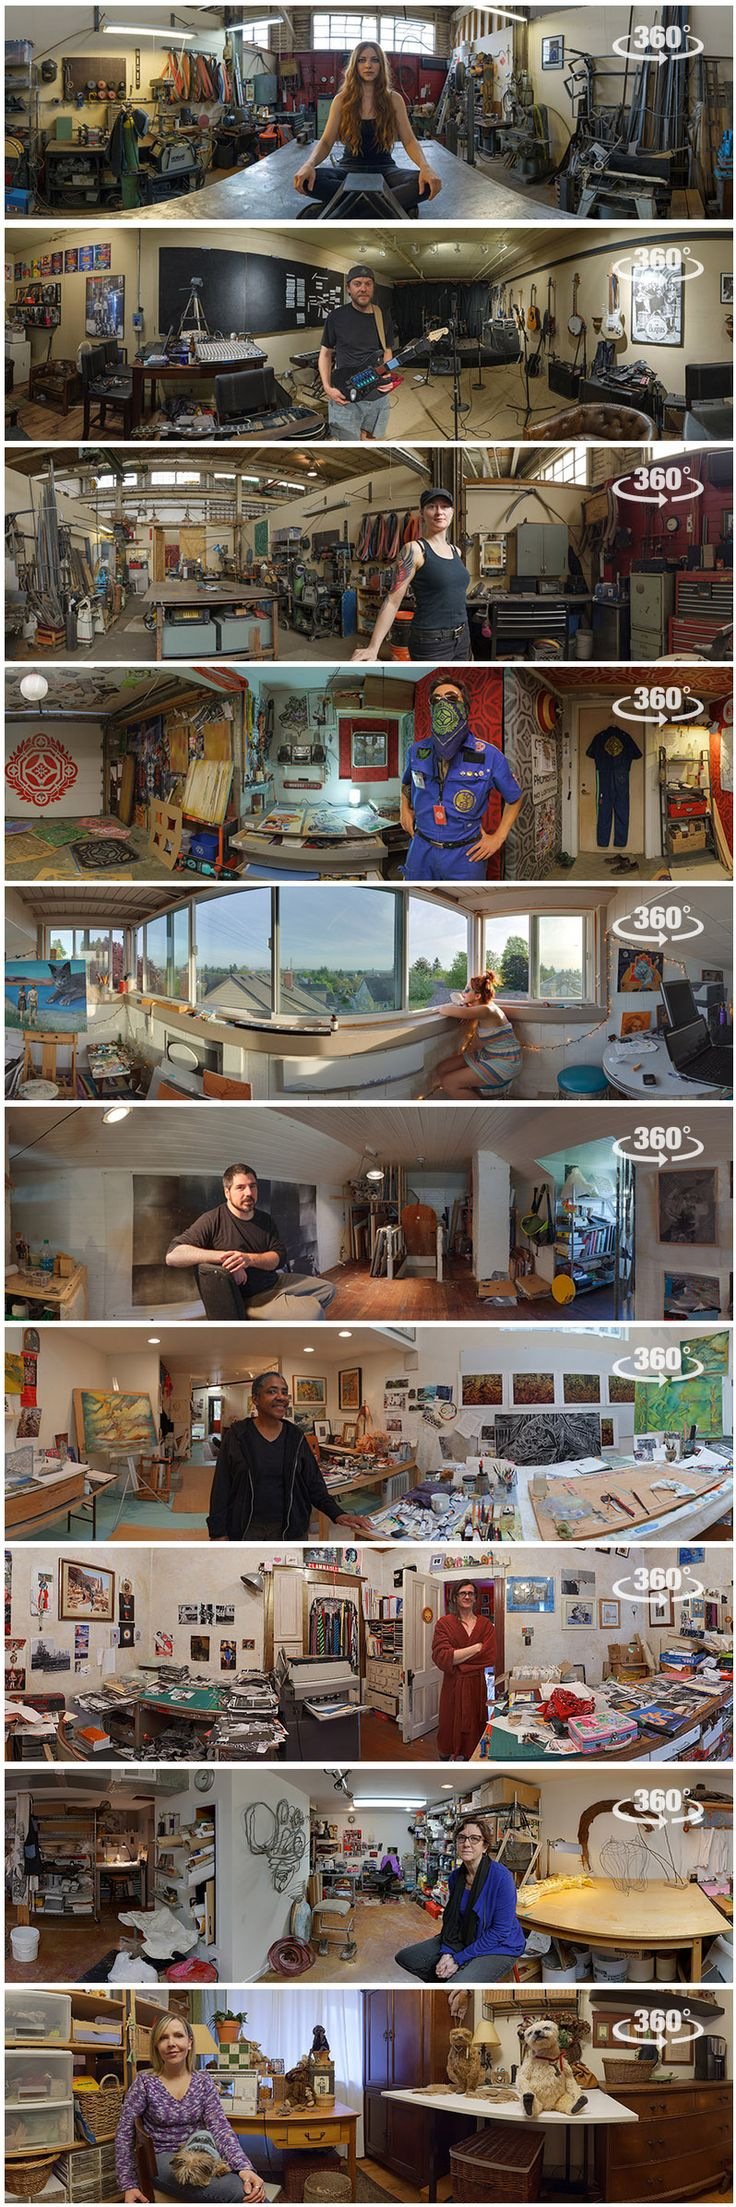 360° Panoramas of Artists in their Studios - Bohonus VR photography http://www.bohonus.com/category/artists-studios/